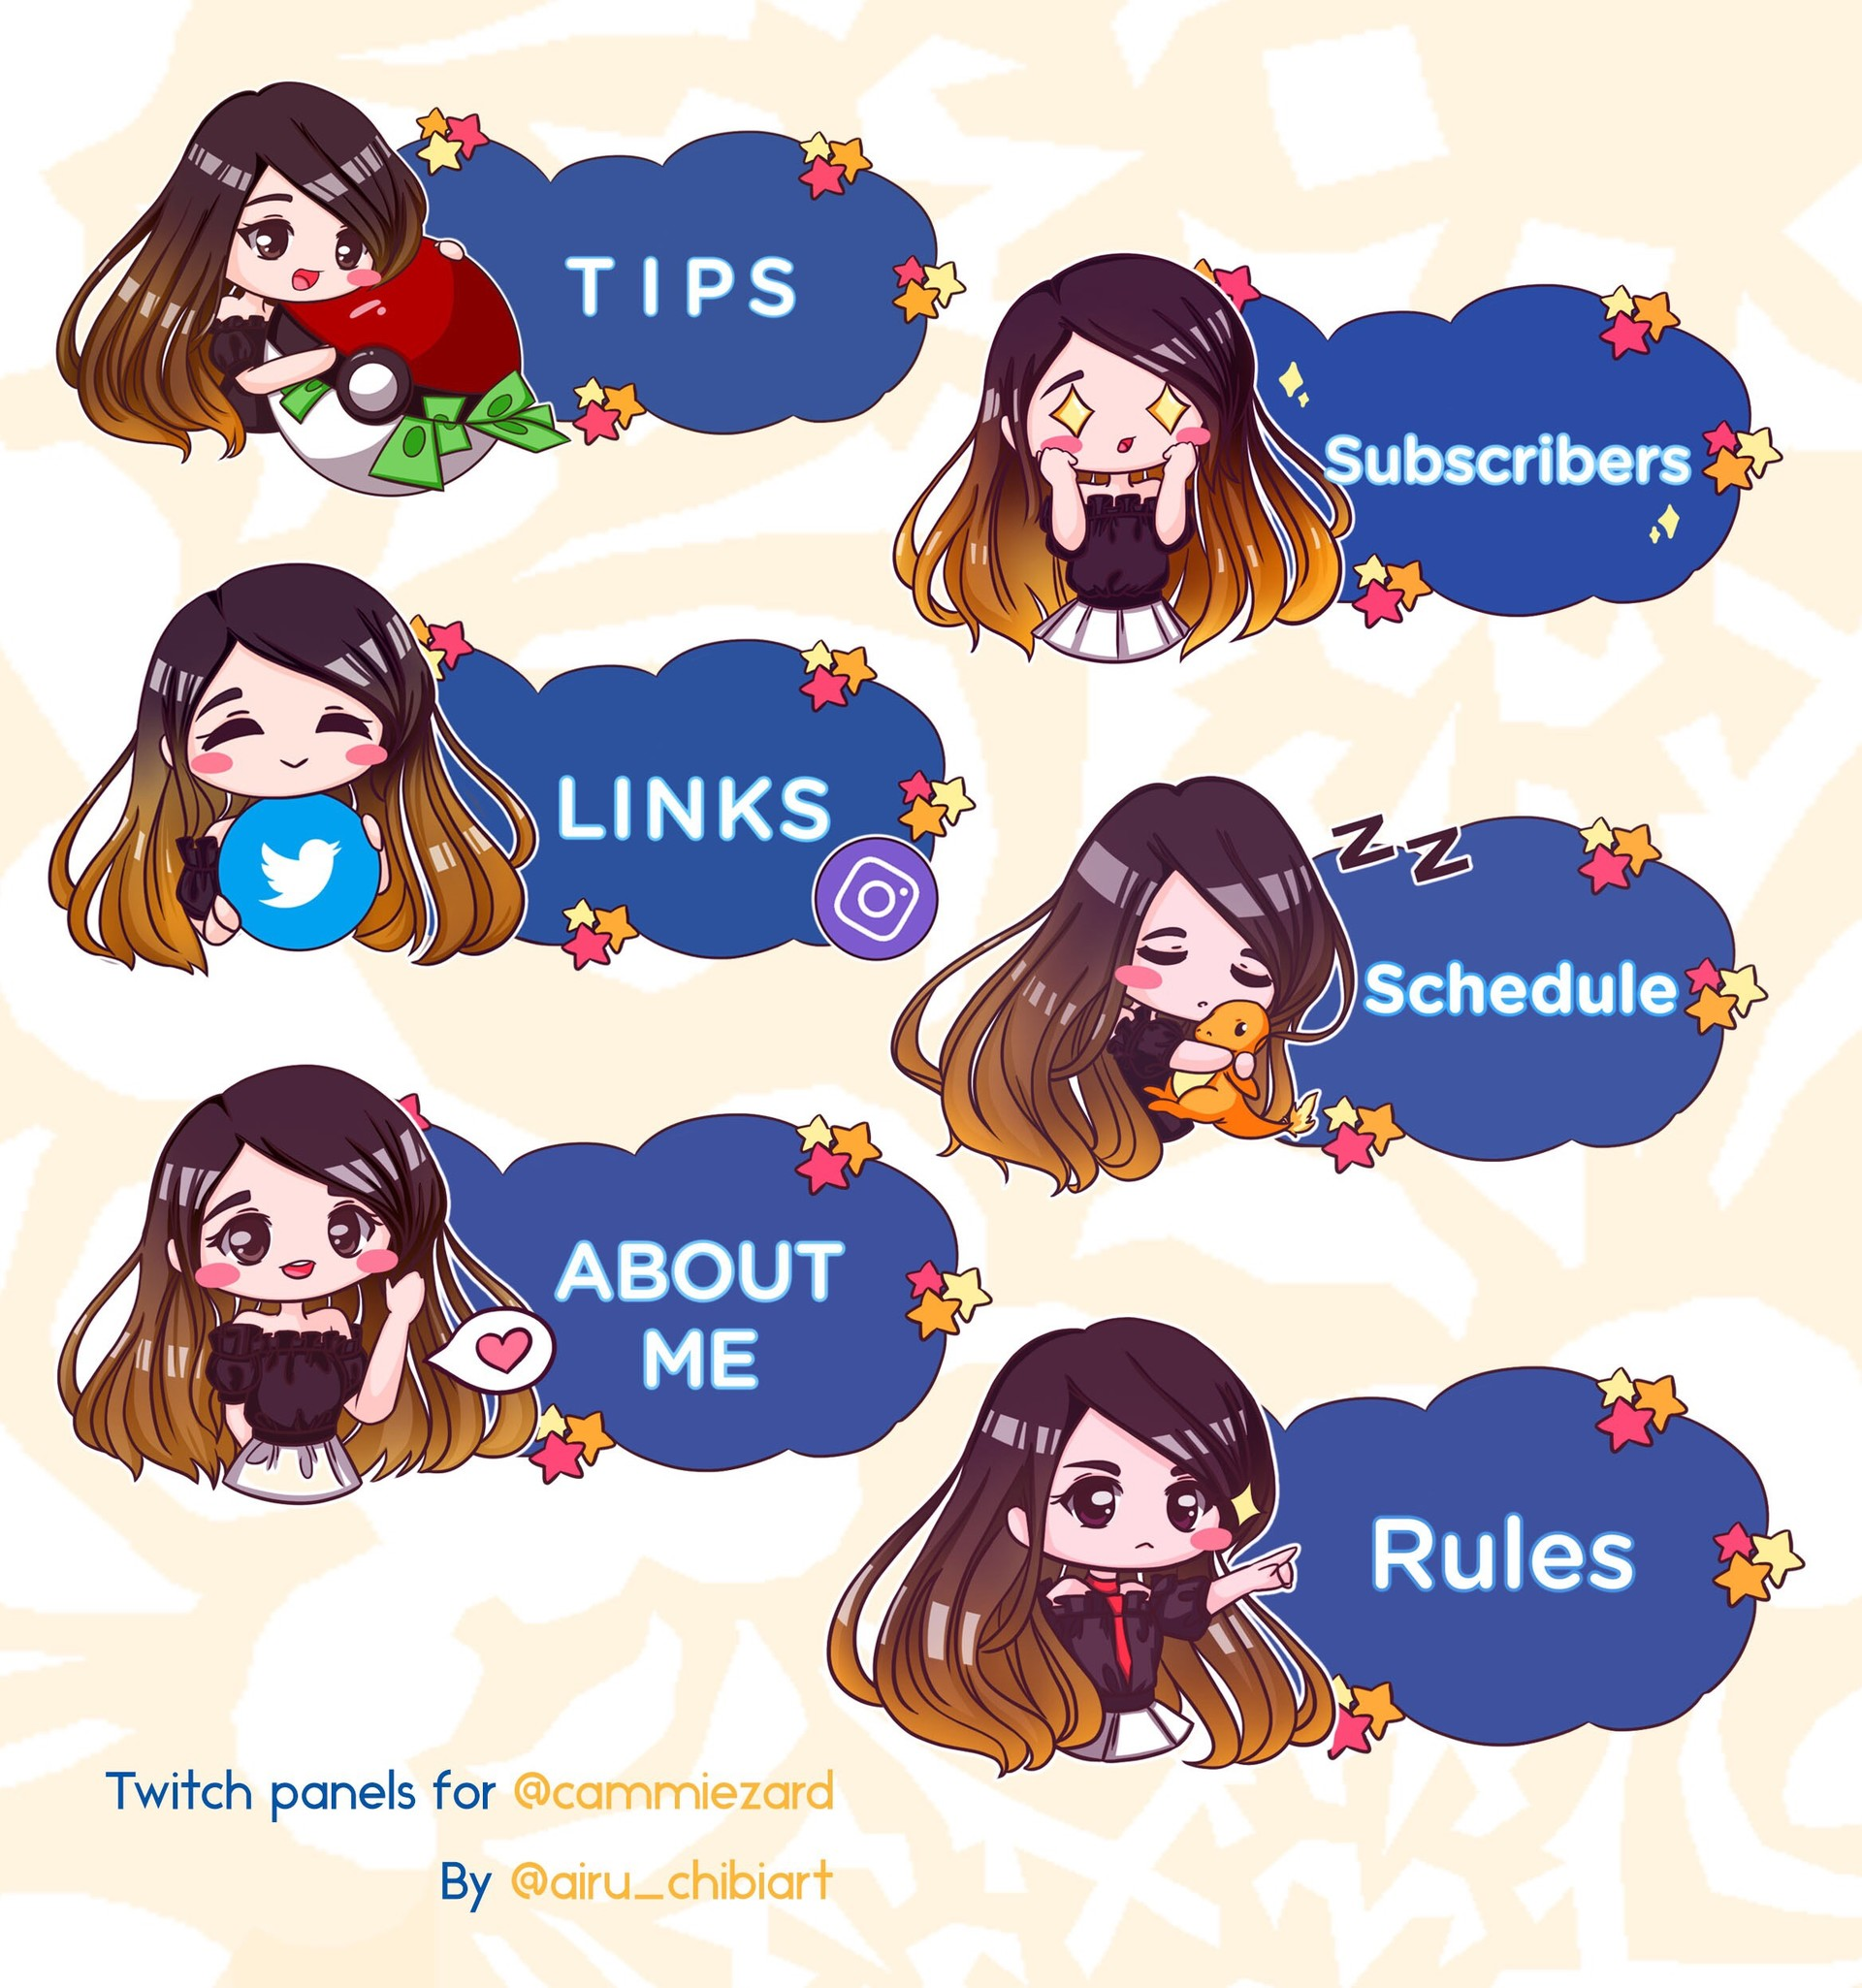 Anime twitch panels   Free Twitch Banner Maker: Create Custom Twitch